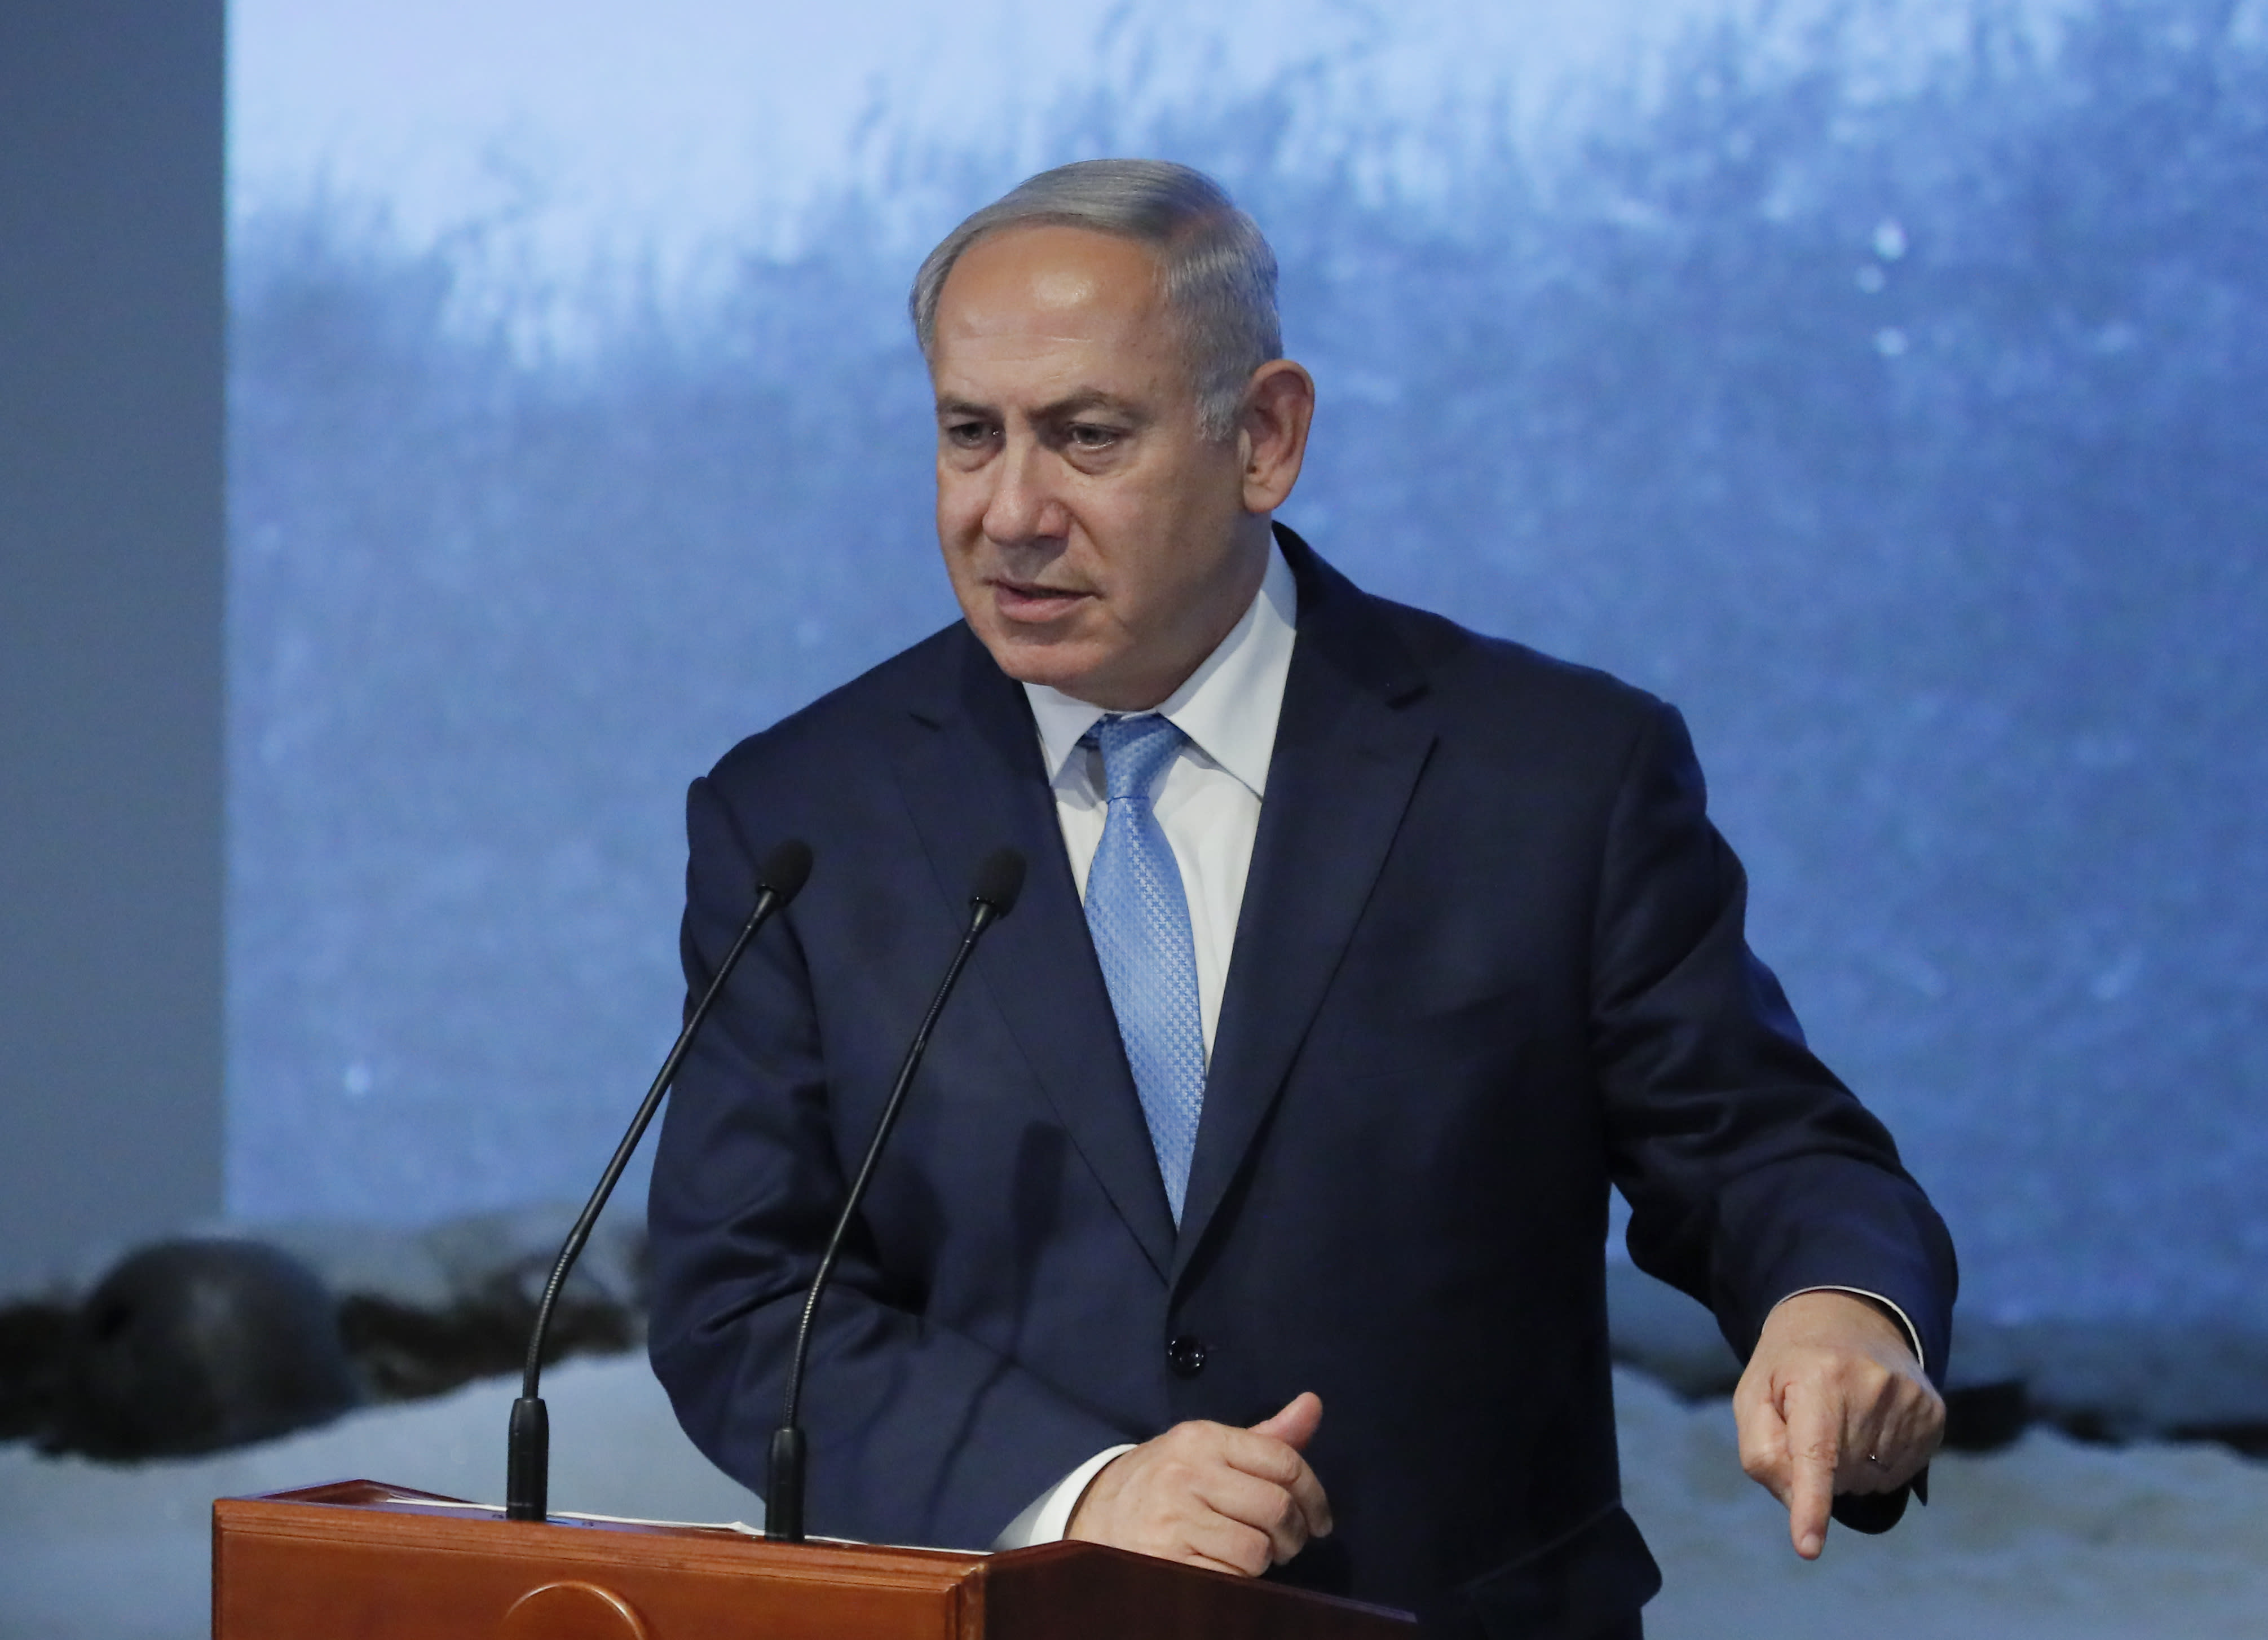 Benjamin Netanyahu delivers a speech during an event marking International Holocaust Remembrance Day at the Jewish Museum and Tolerance Centre in Moscow, Russia January 29, 2018. (REUTERS/MAXIM SHEMETOV)